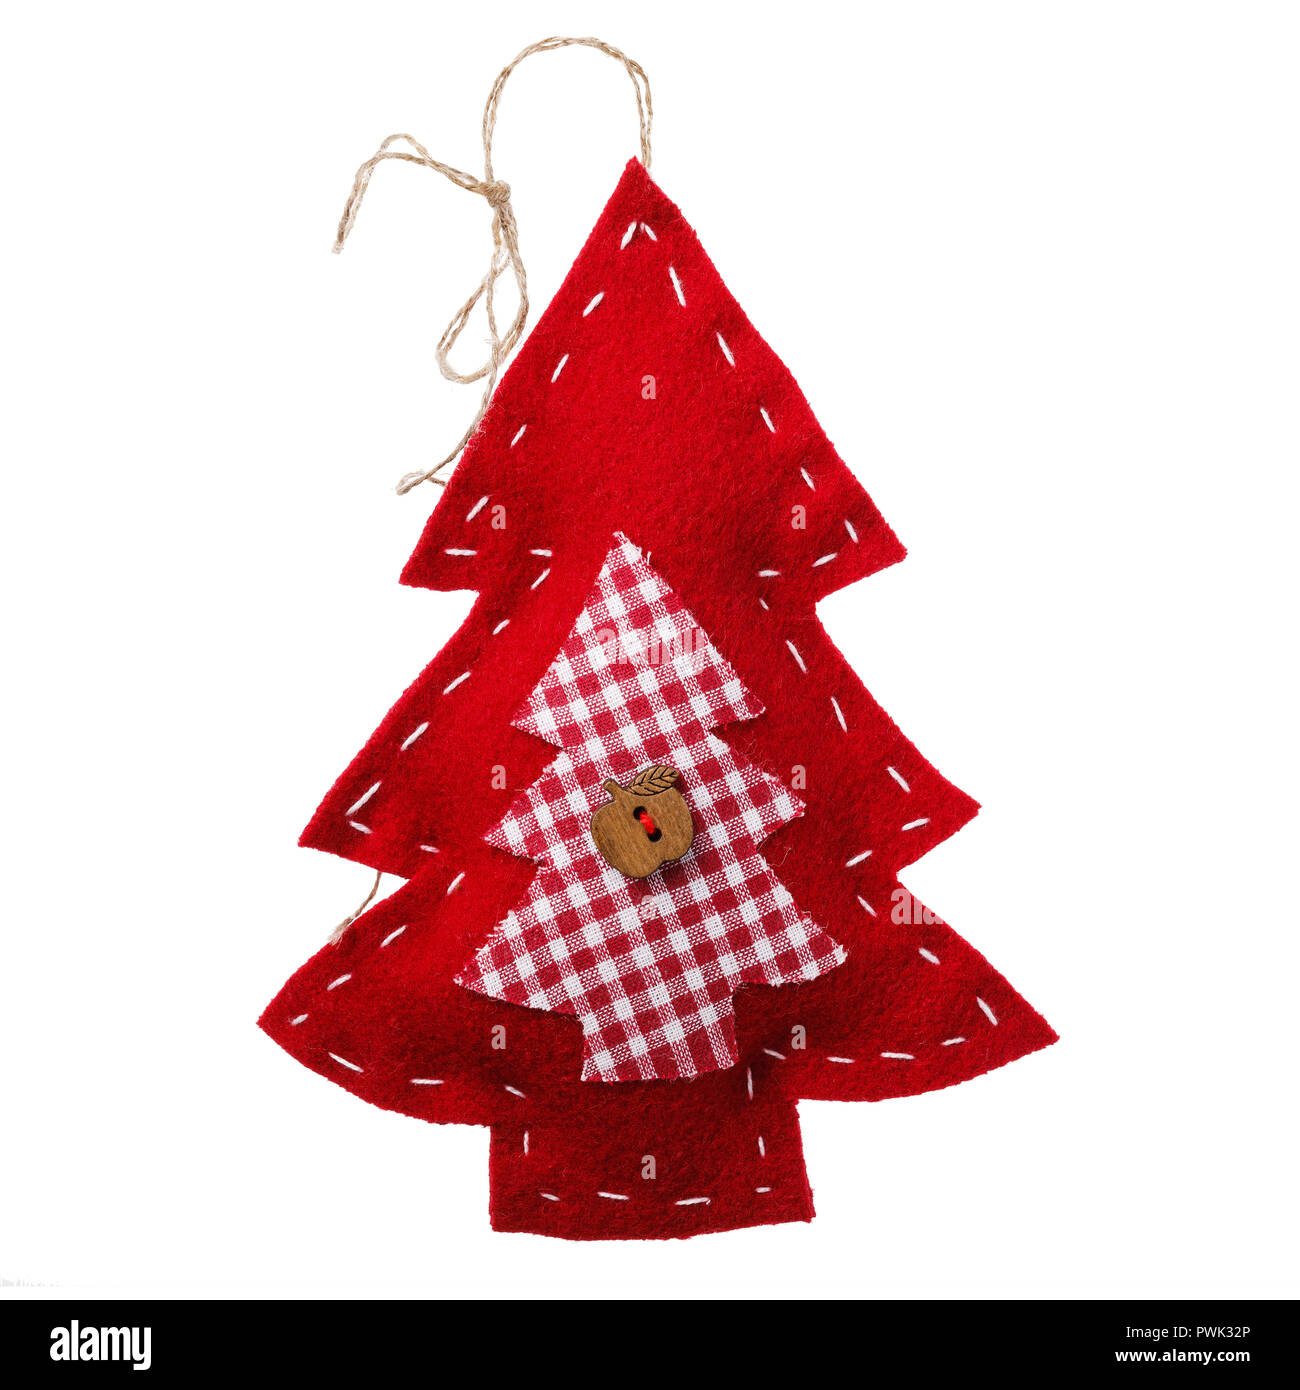 Red spruce toy as decoration for Christmas holidays, isolated on white background - Stock Image